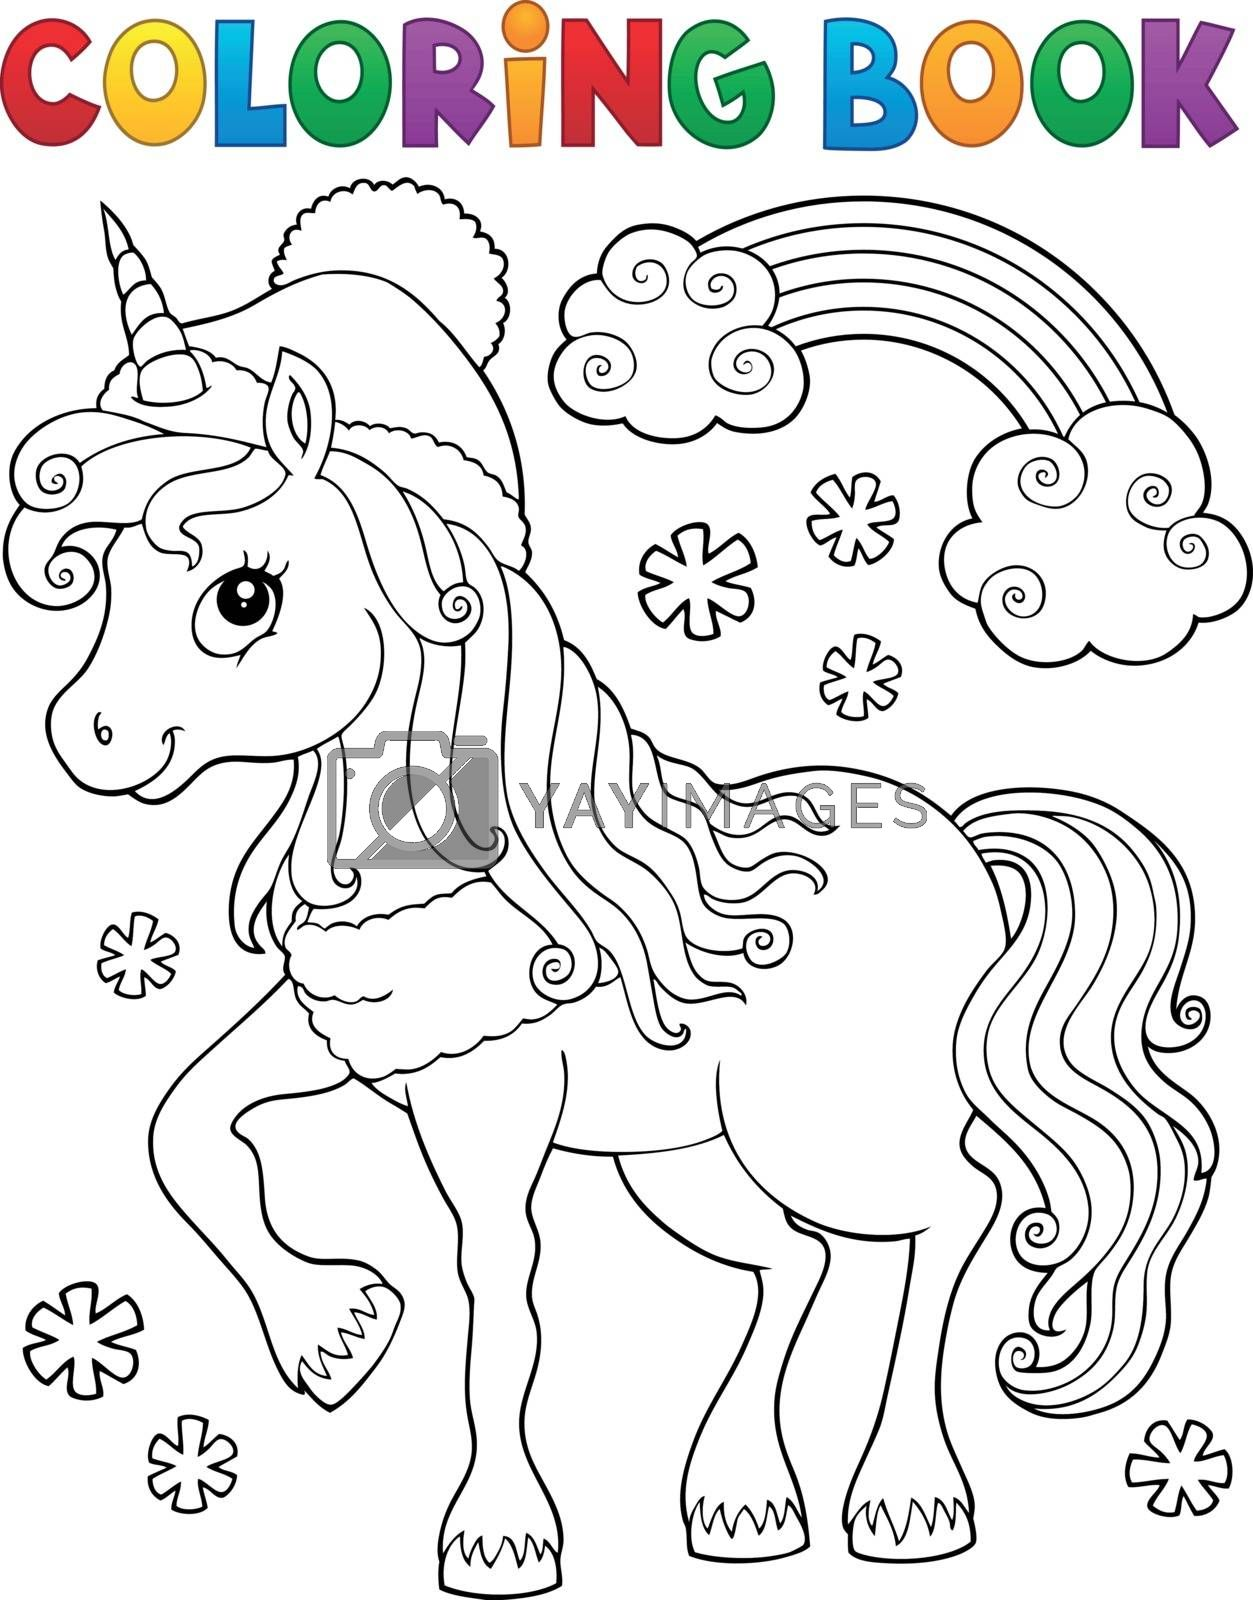 Coloring book winter unicorn theme 1 - eps10 vector illustration.